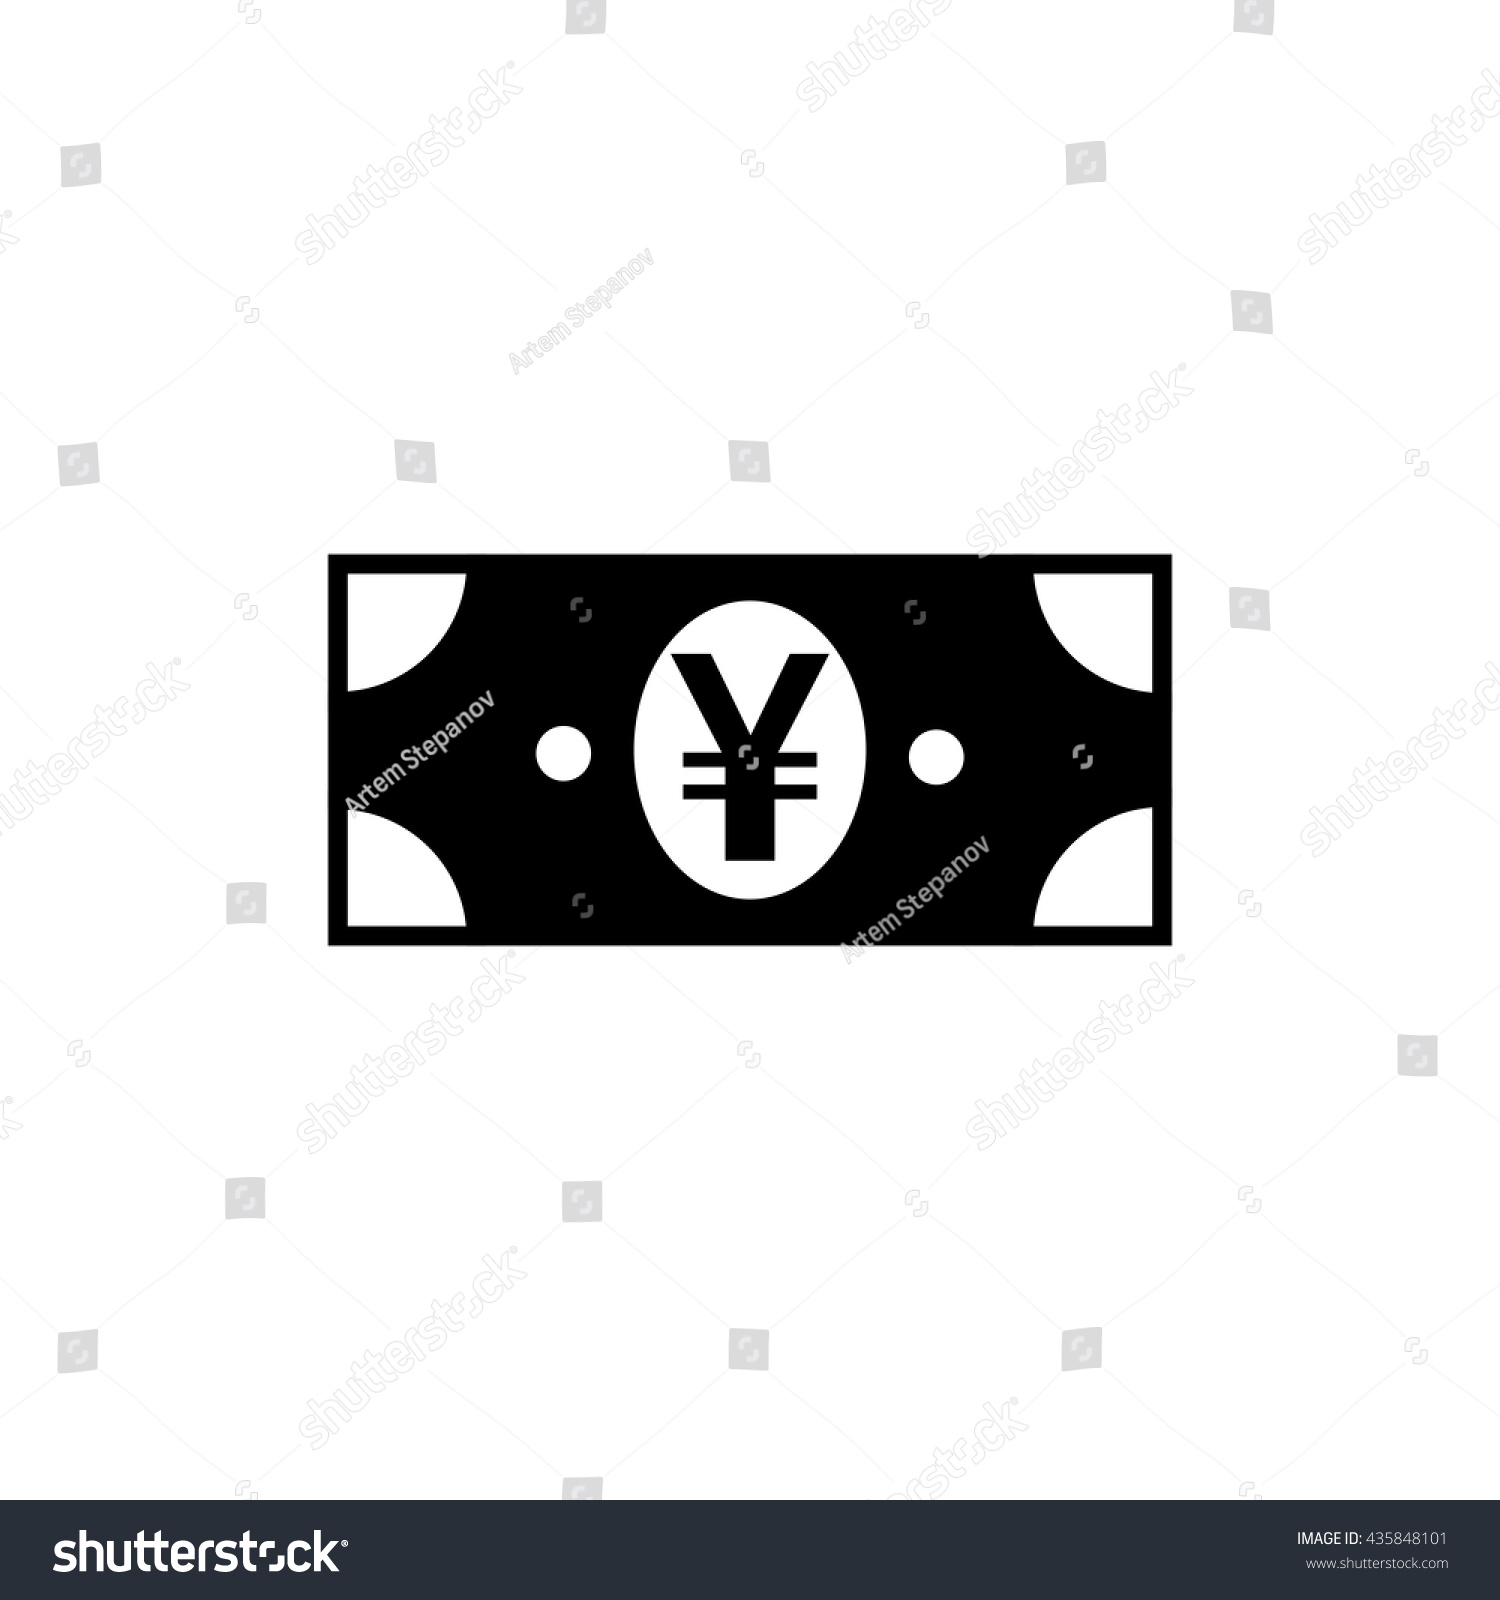 Japanese yen chinese yuan currency symbol stock vector 435848101 japanese yen or chinese yuan currency symbol flat icon for apps and websites biocorpaavc